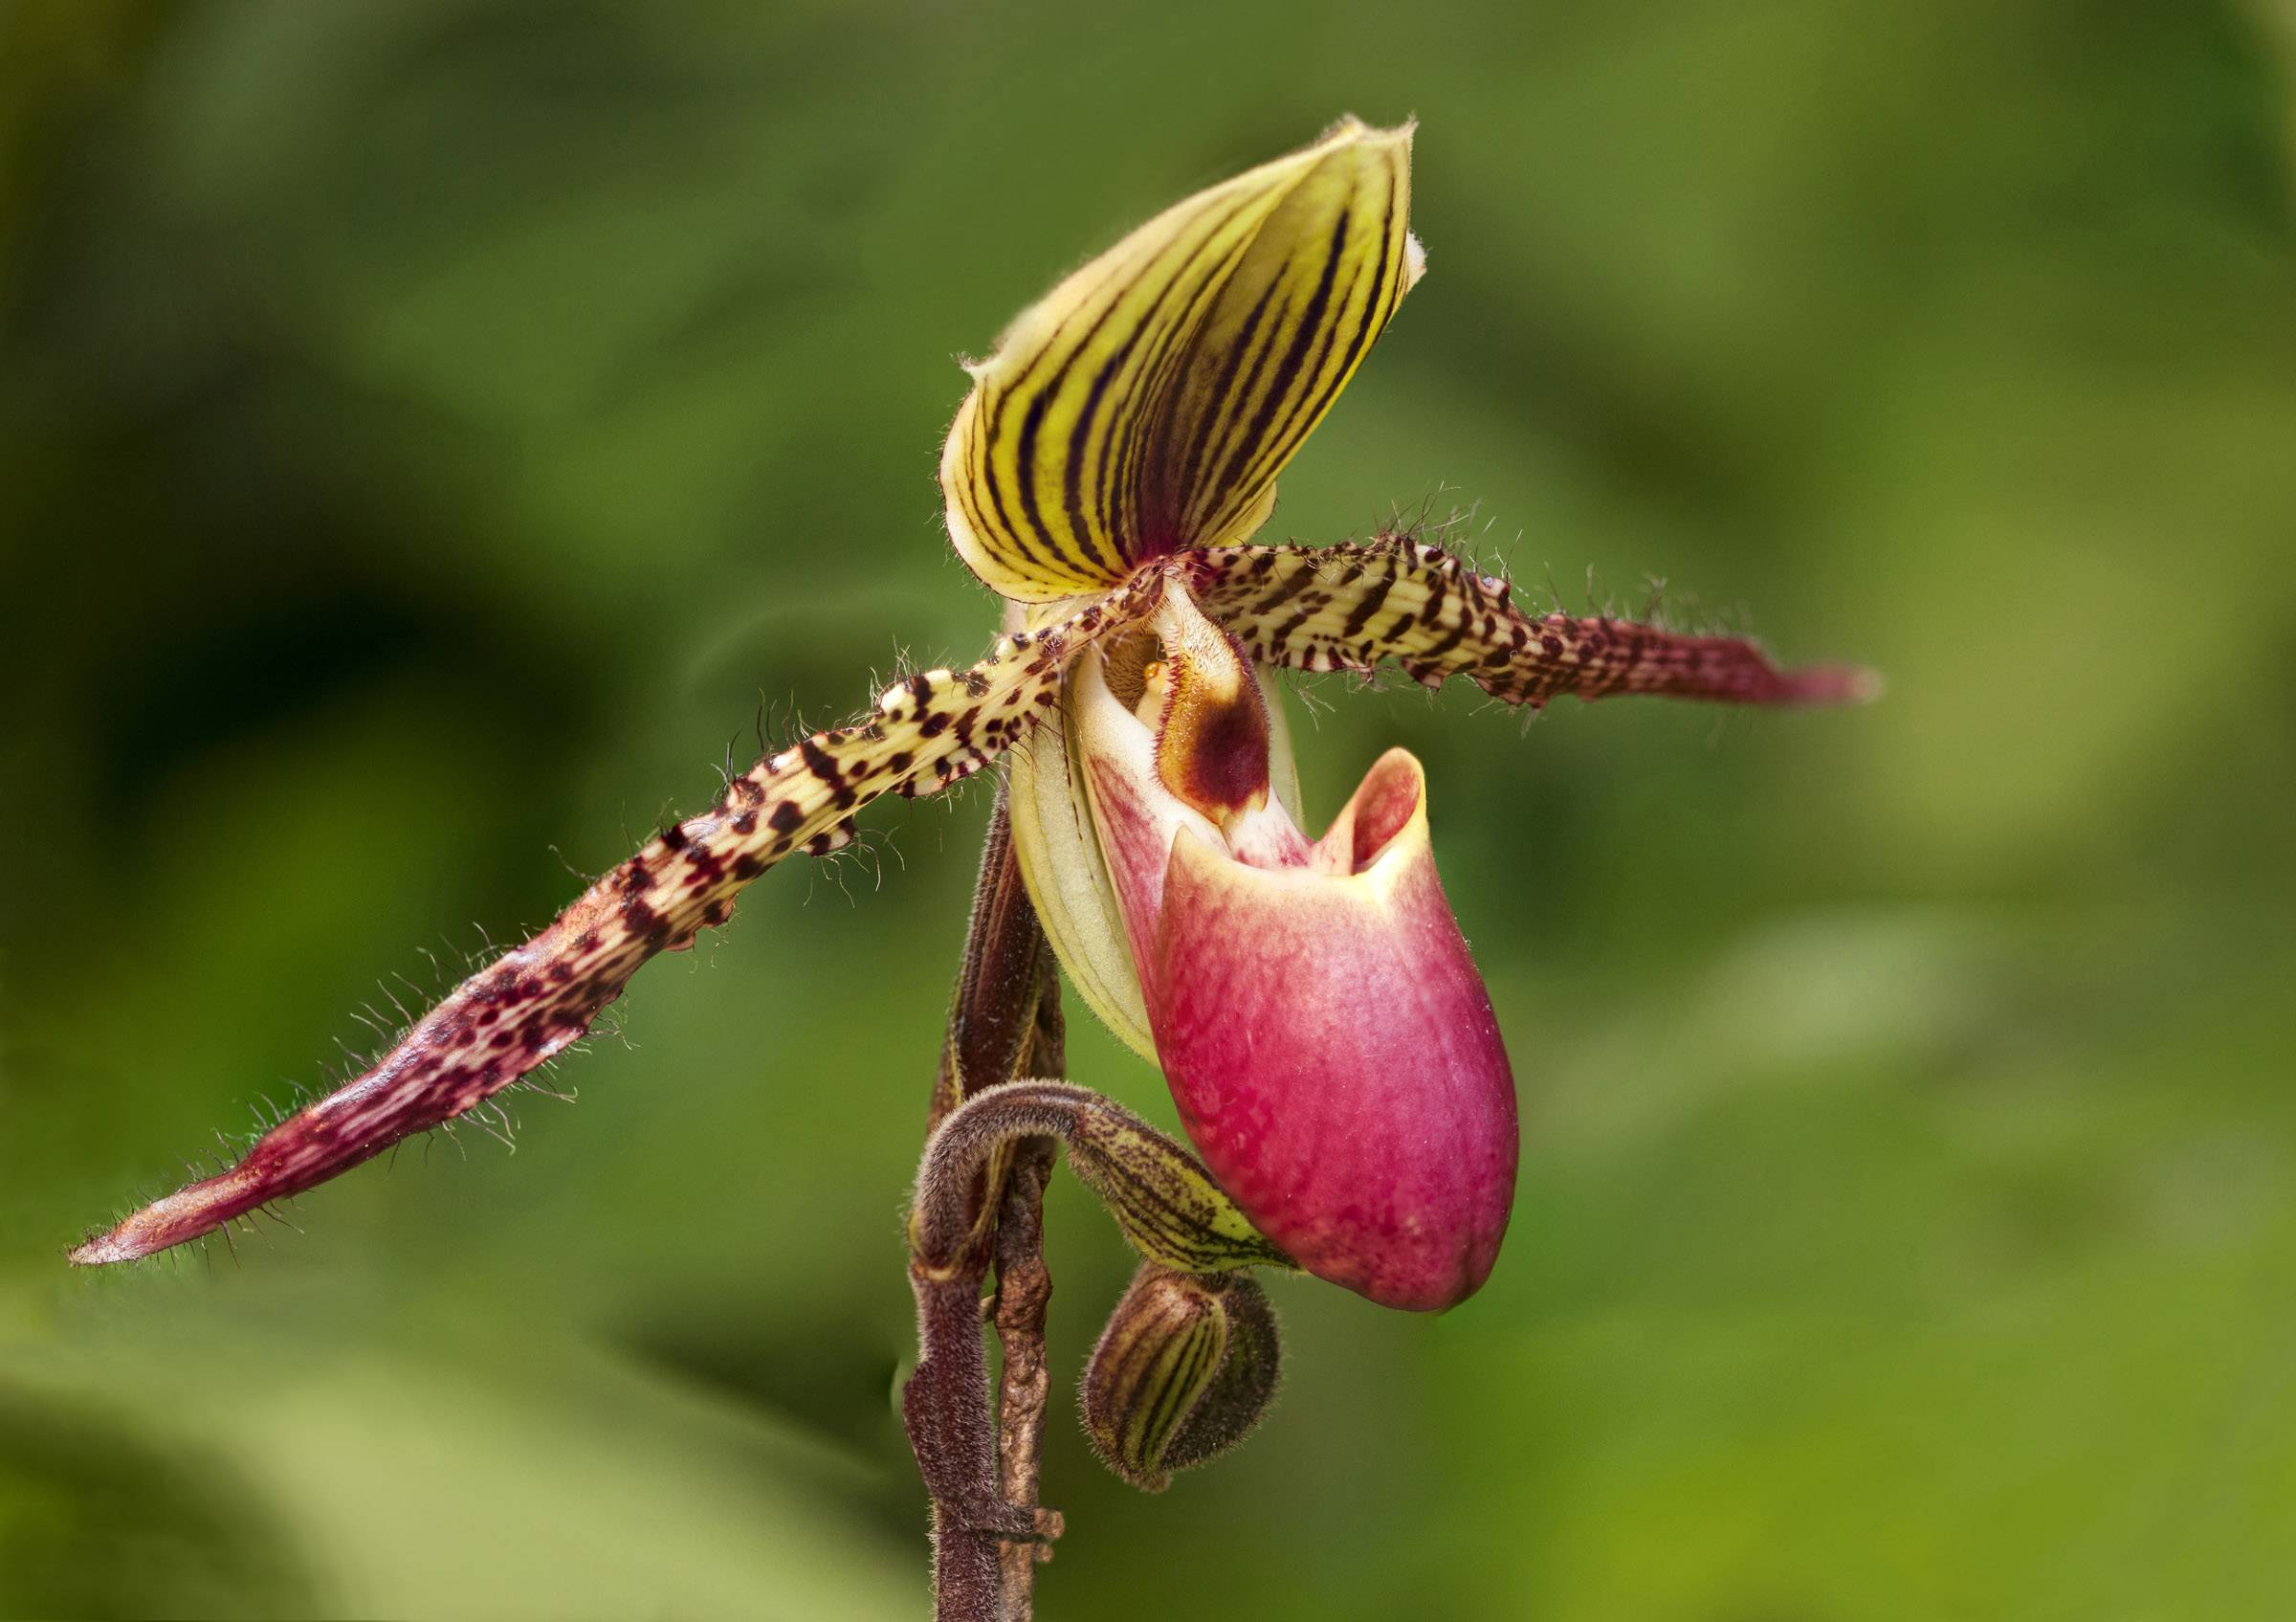 A colorful slipper orchid at the Chicago Botanic Garden in Glencoe on February 24 with intricate fine hairs on the stems.